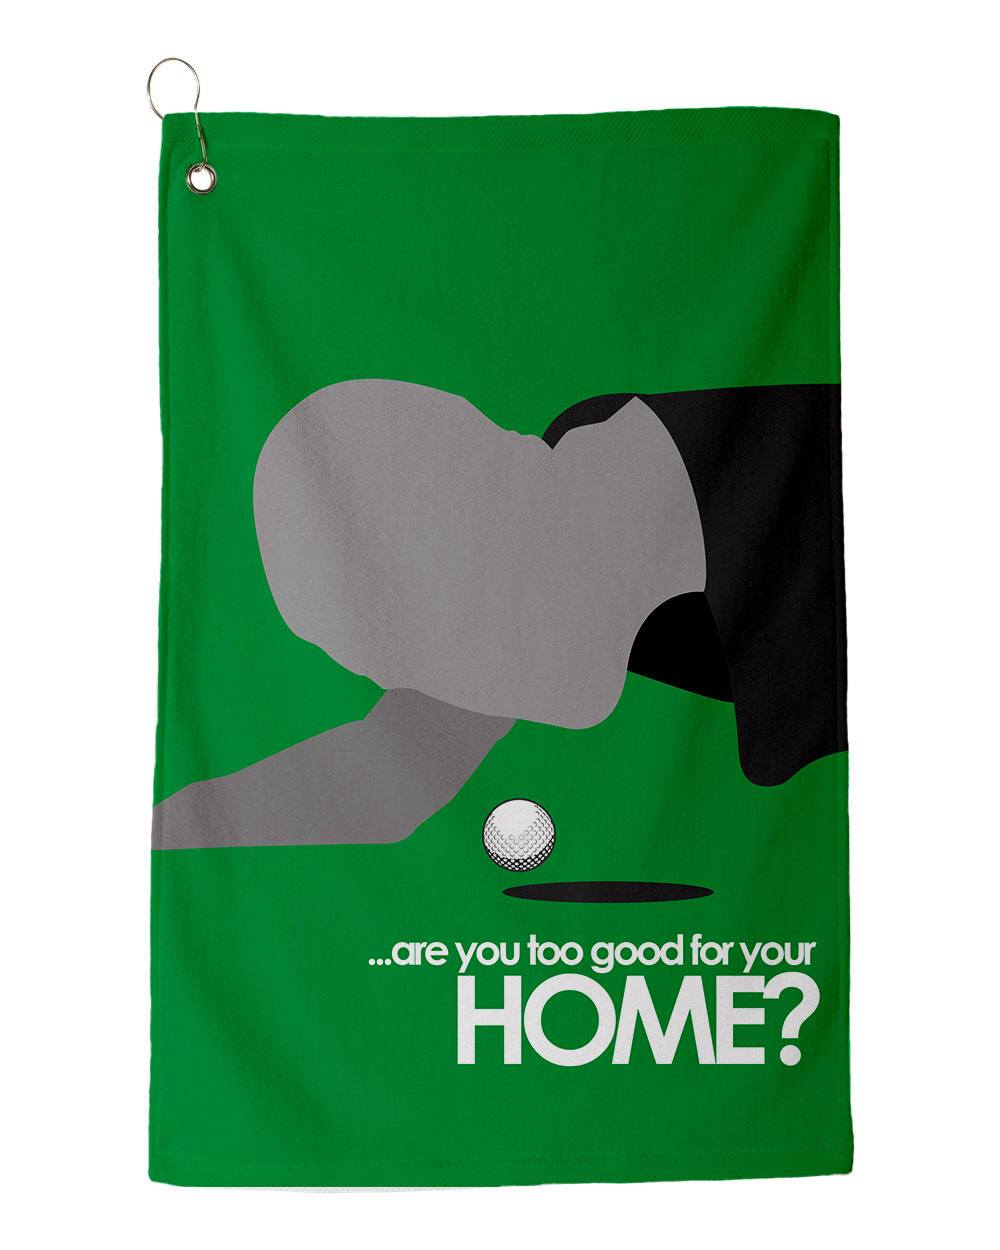 "Are you too good for your HOME? - Golf Towel 15"" x 22"" Dye Sublimated Towels"